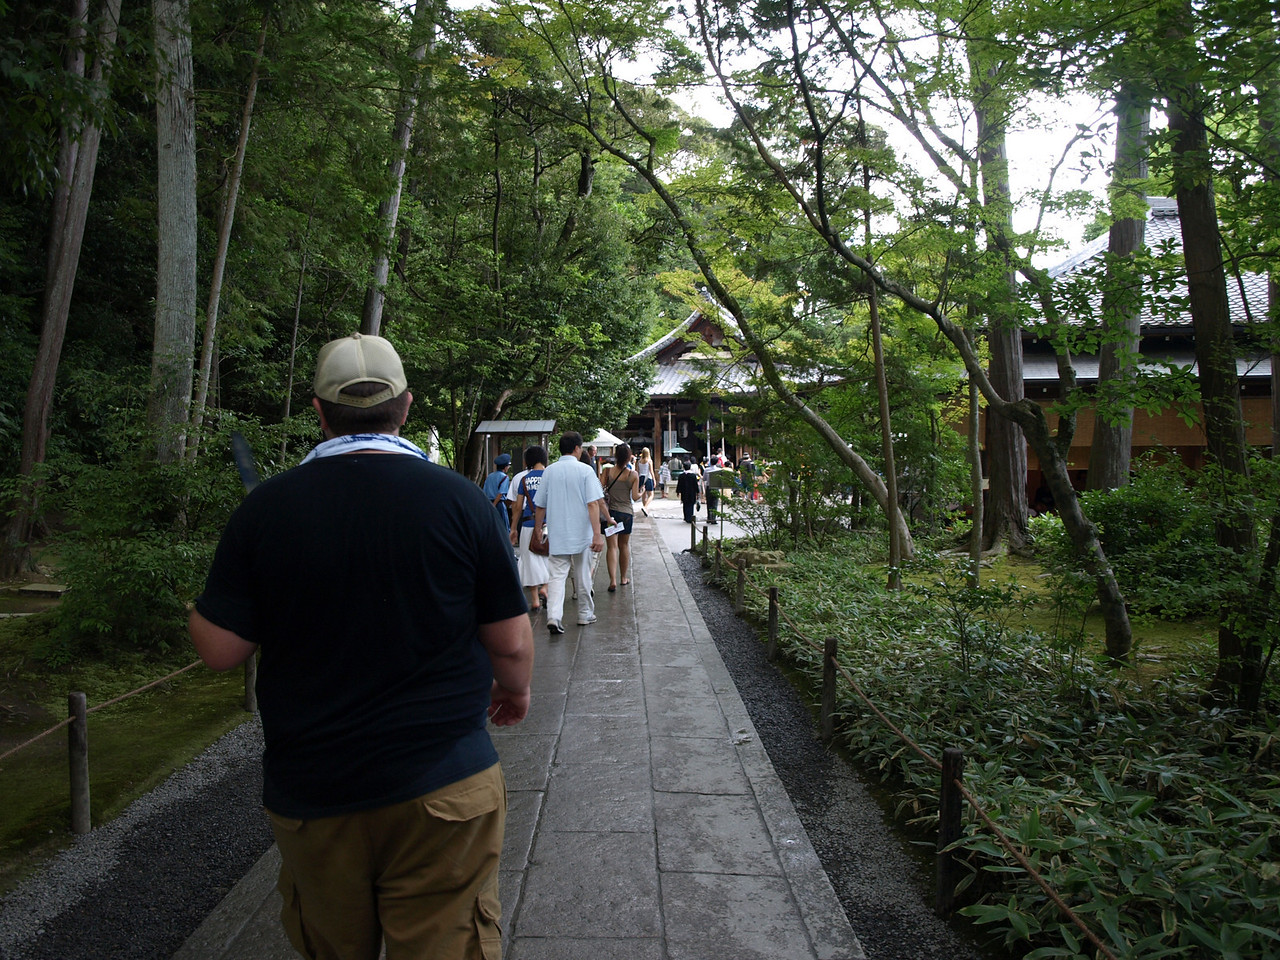 We approach the Sekka-tei Tea House